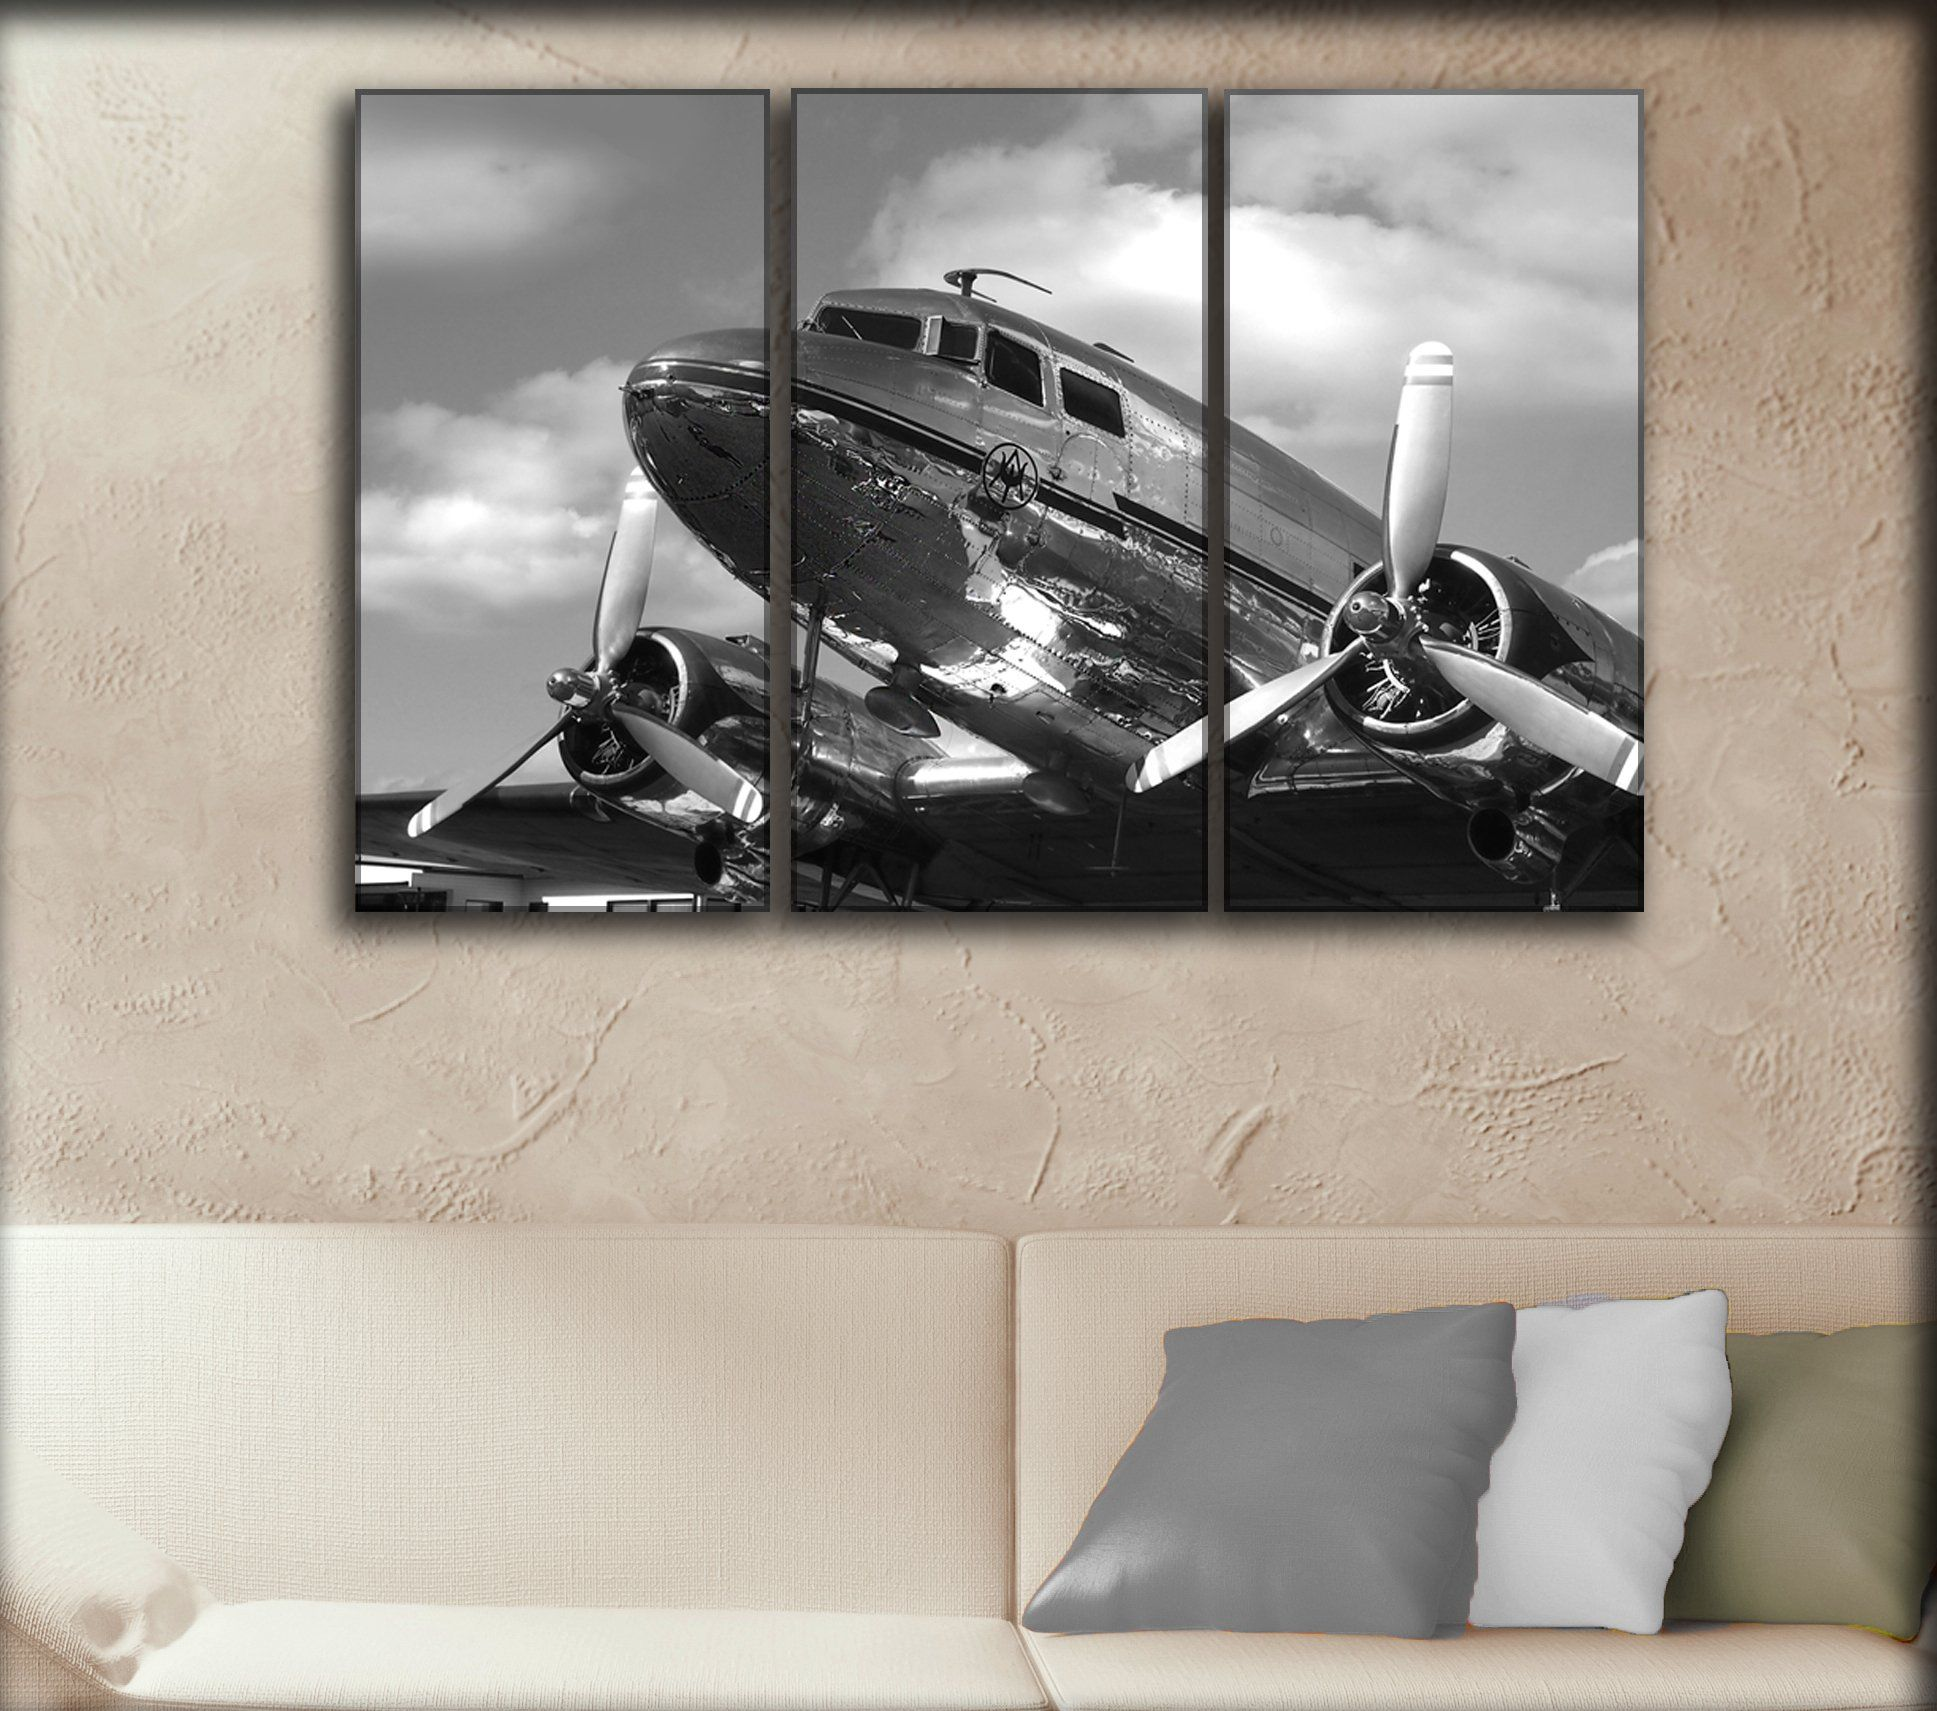 3 Panel Dc3 Dakota Airplane Canvas Art Aircraft Canvas Wall Art Vintage Plane Picture Propeller Wall Canva Wall Art Prints Canvas Wall Art Propeller Wall